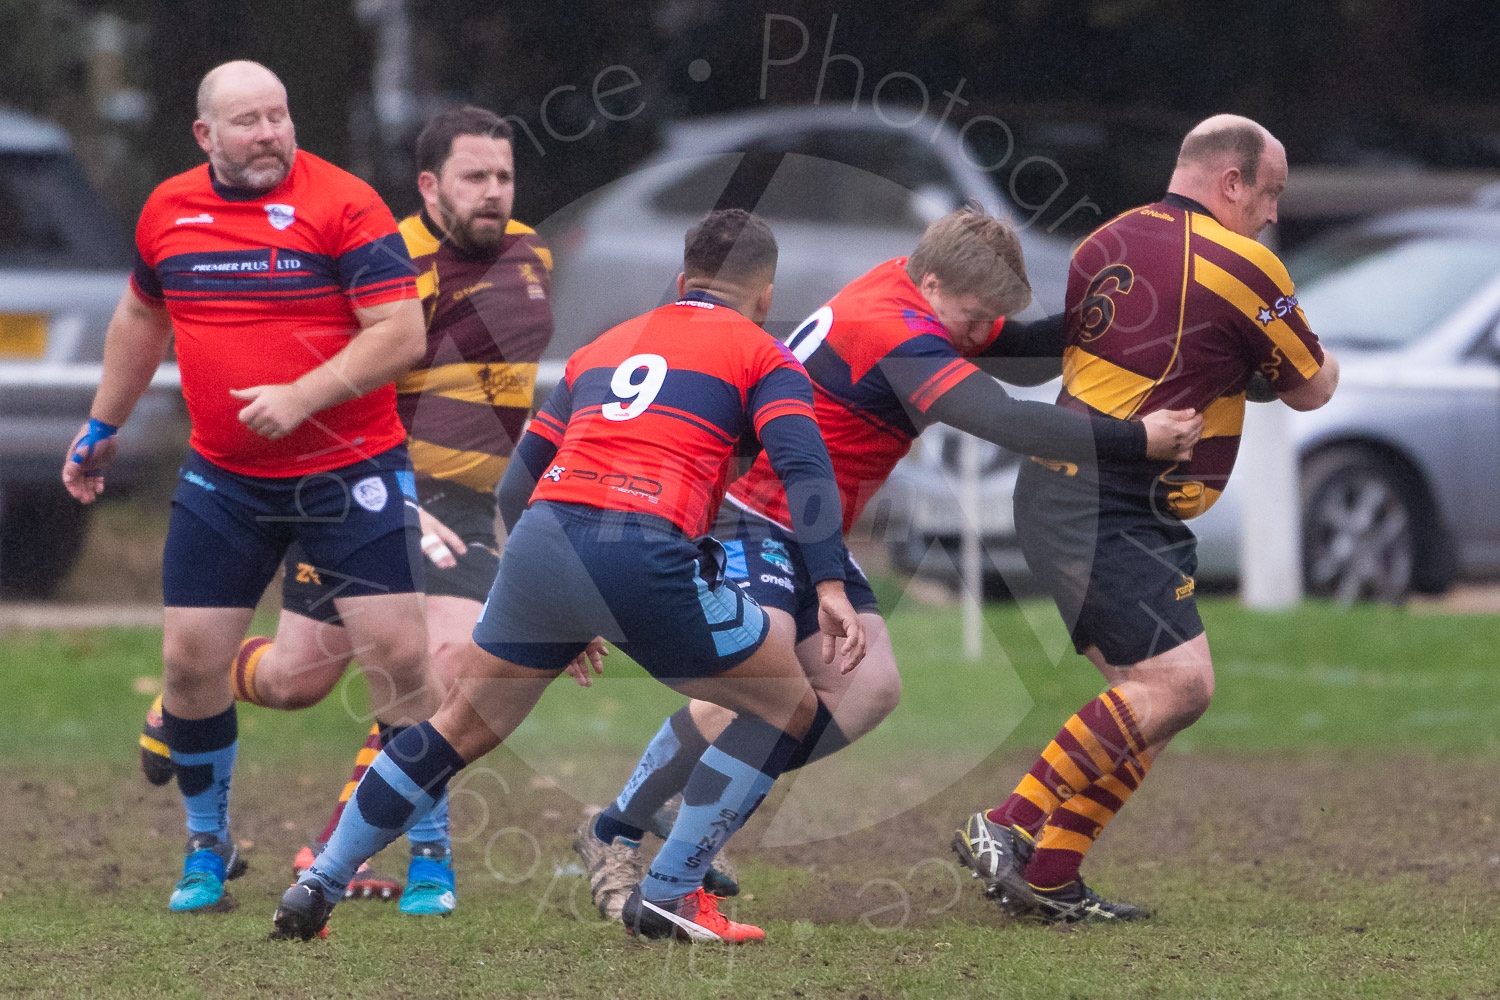 20181027 Amp Extras vs St Neots 2nd XV #2357